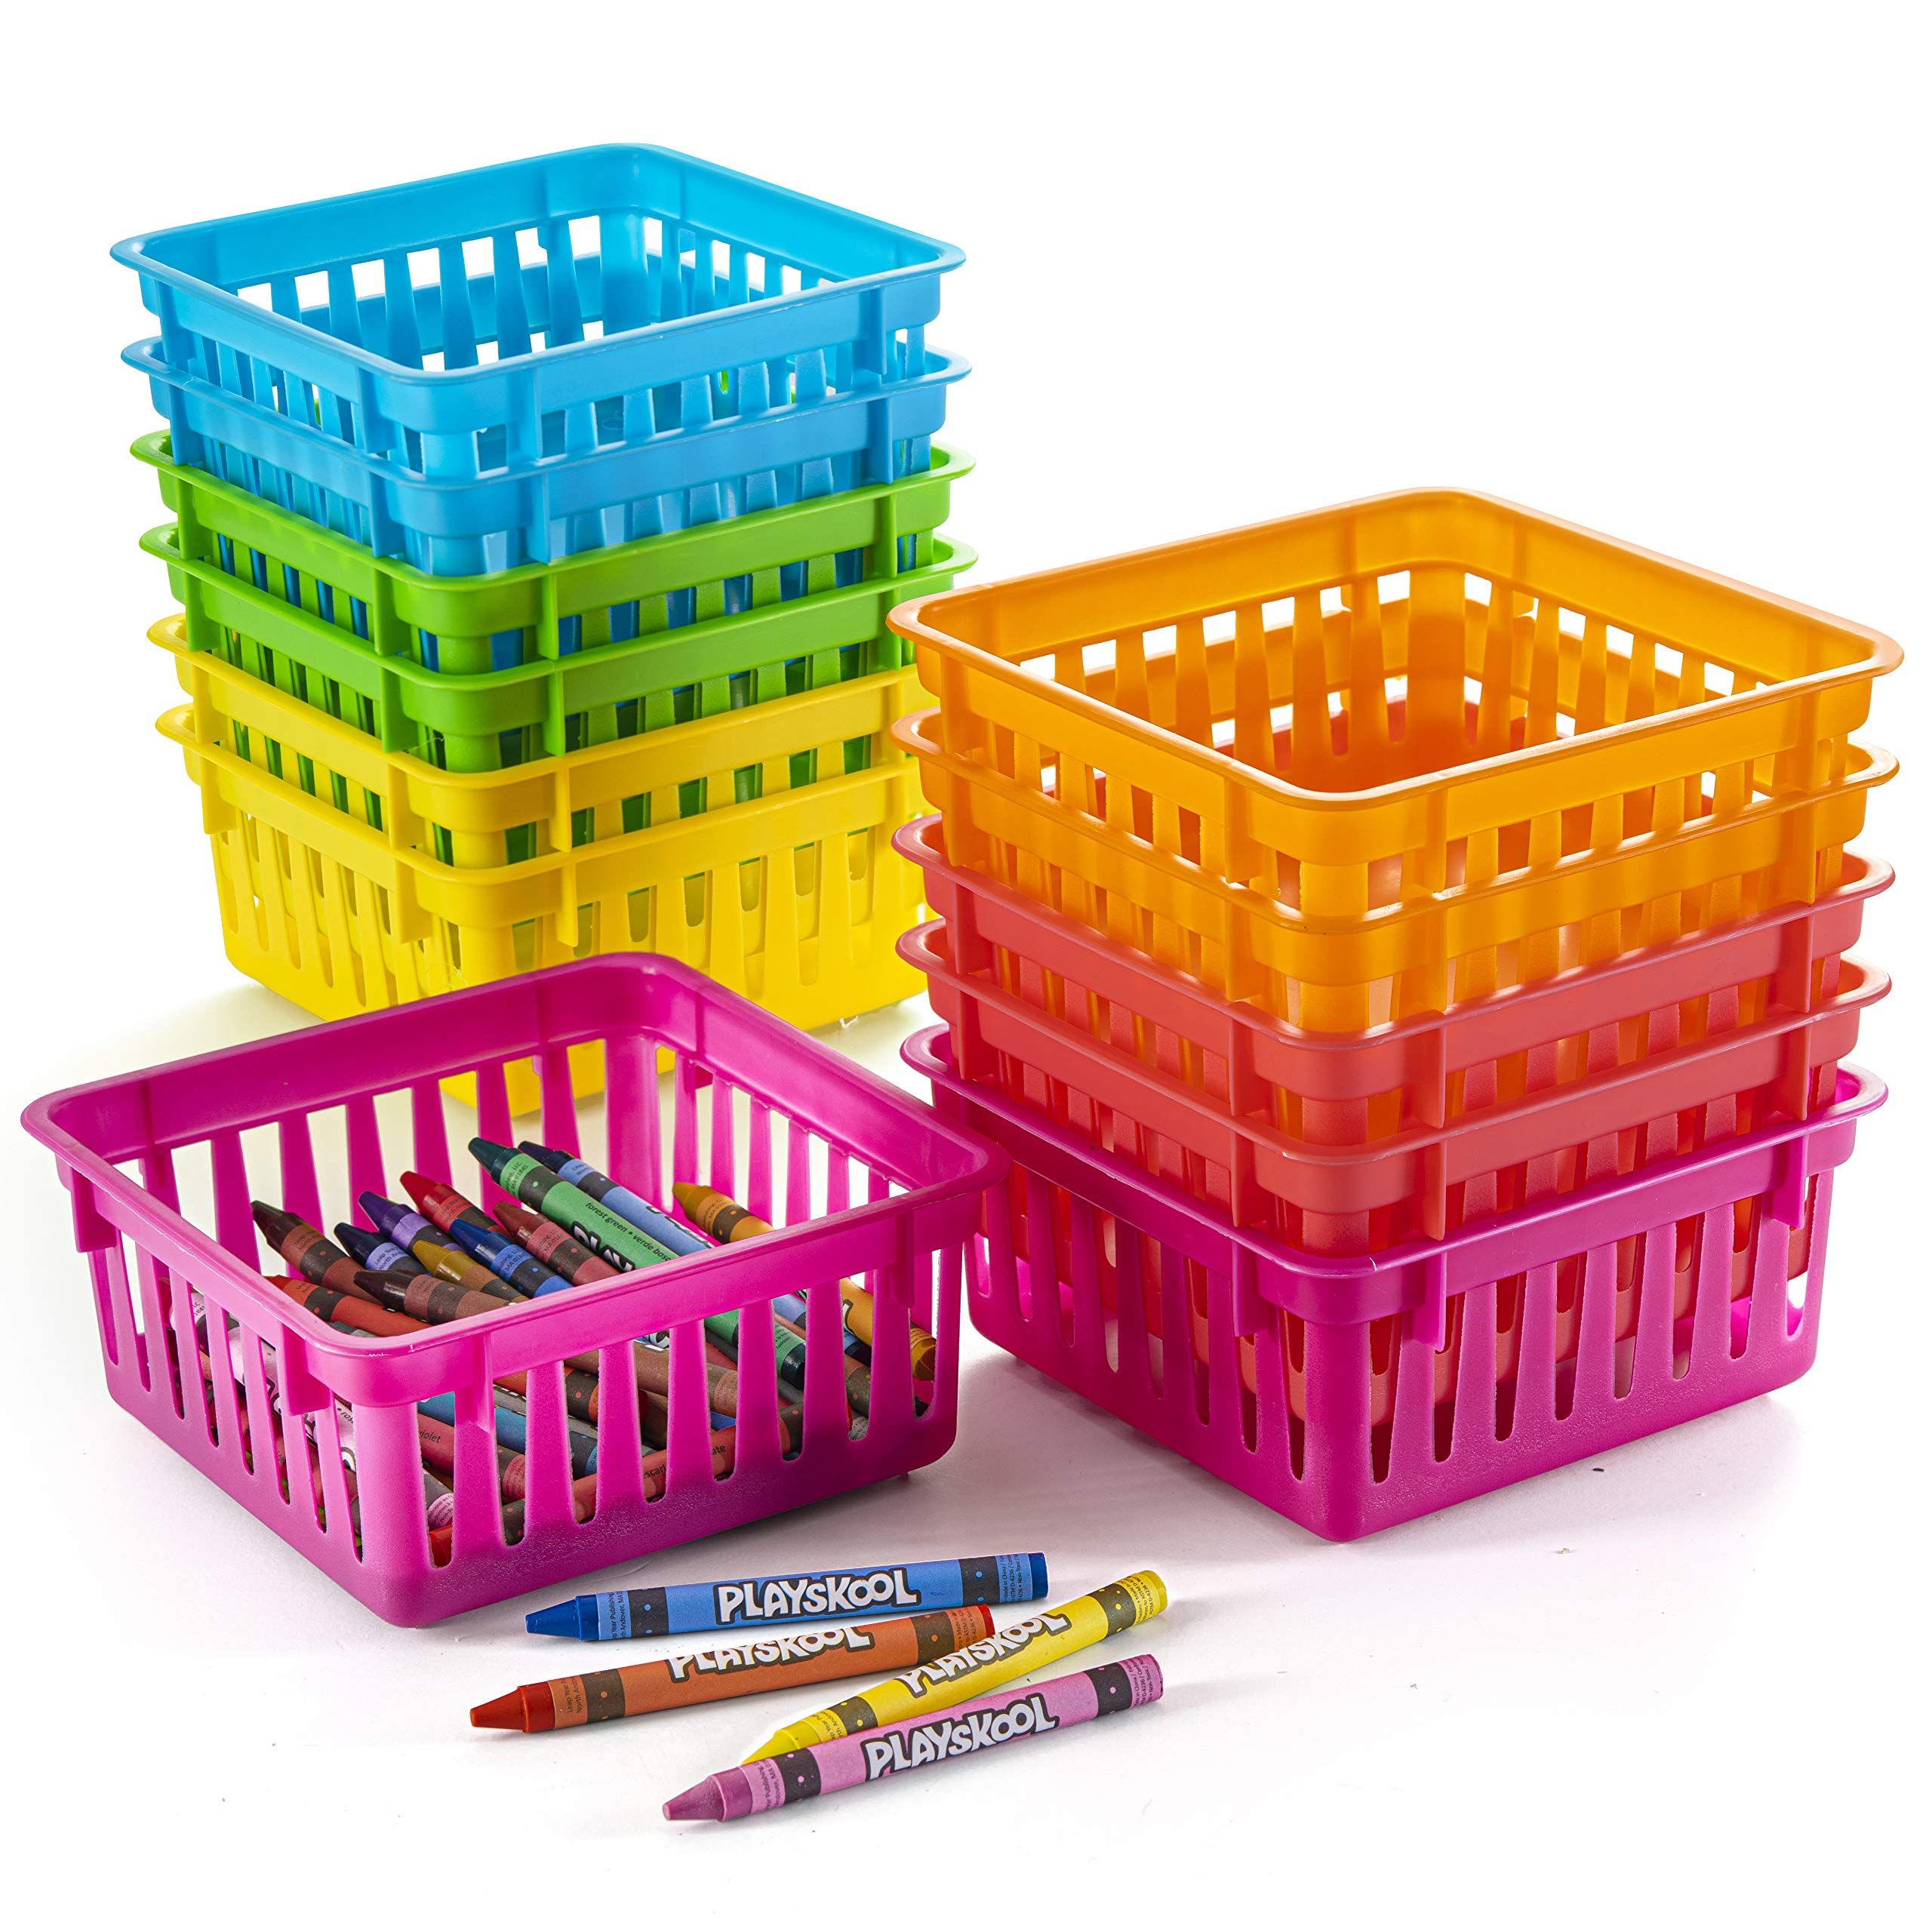 Classroom Office File Holders for Home Kitchen Office School Plastic Oraganizer Baskets Colorful Plastic Bin with Handles Lawei 8 Pack Paper Organizer Baskets